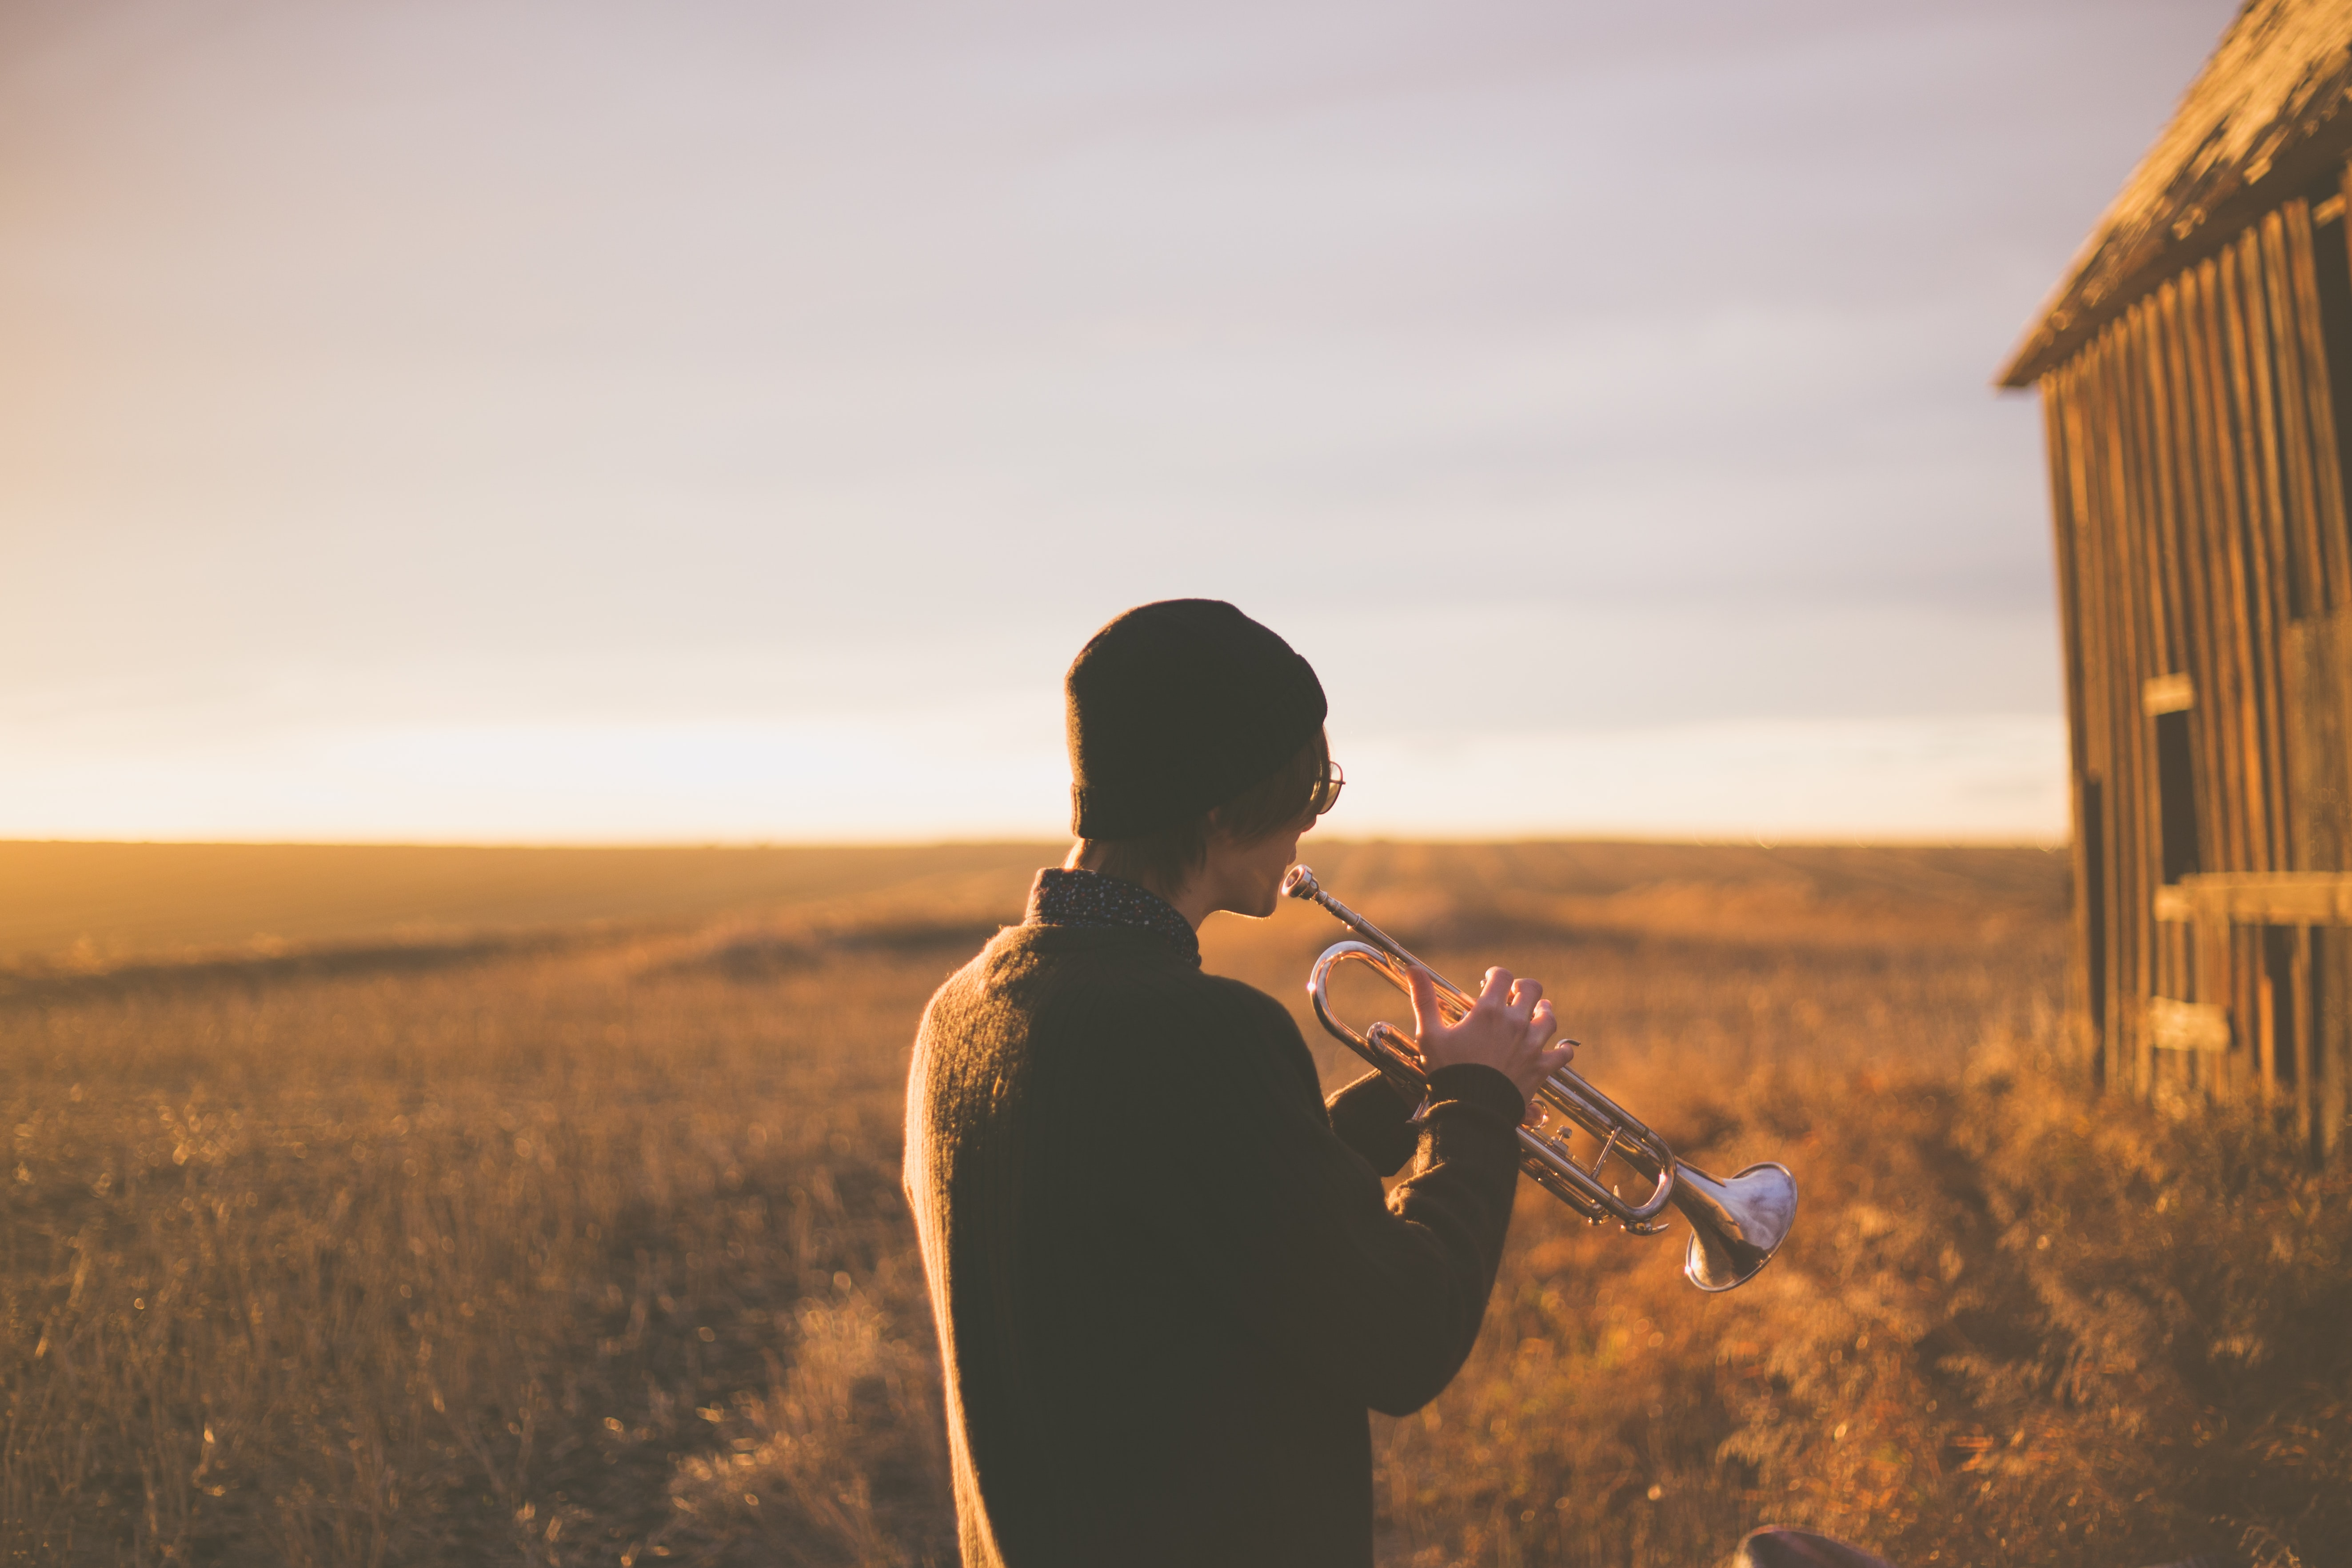 Musician playing trumpet alone in an empty forest field